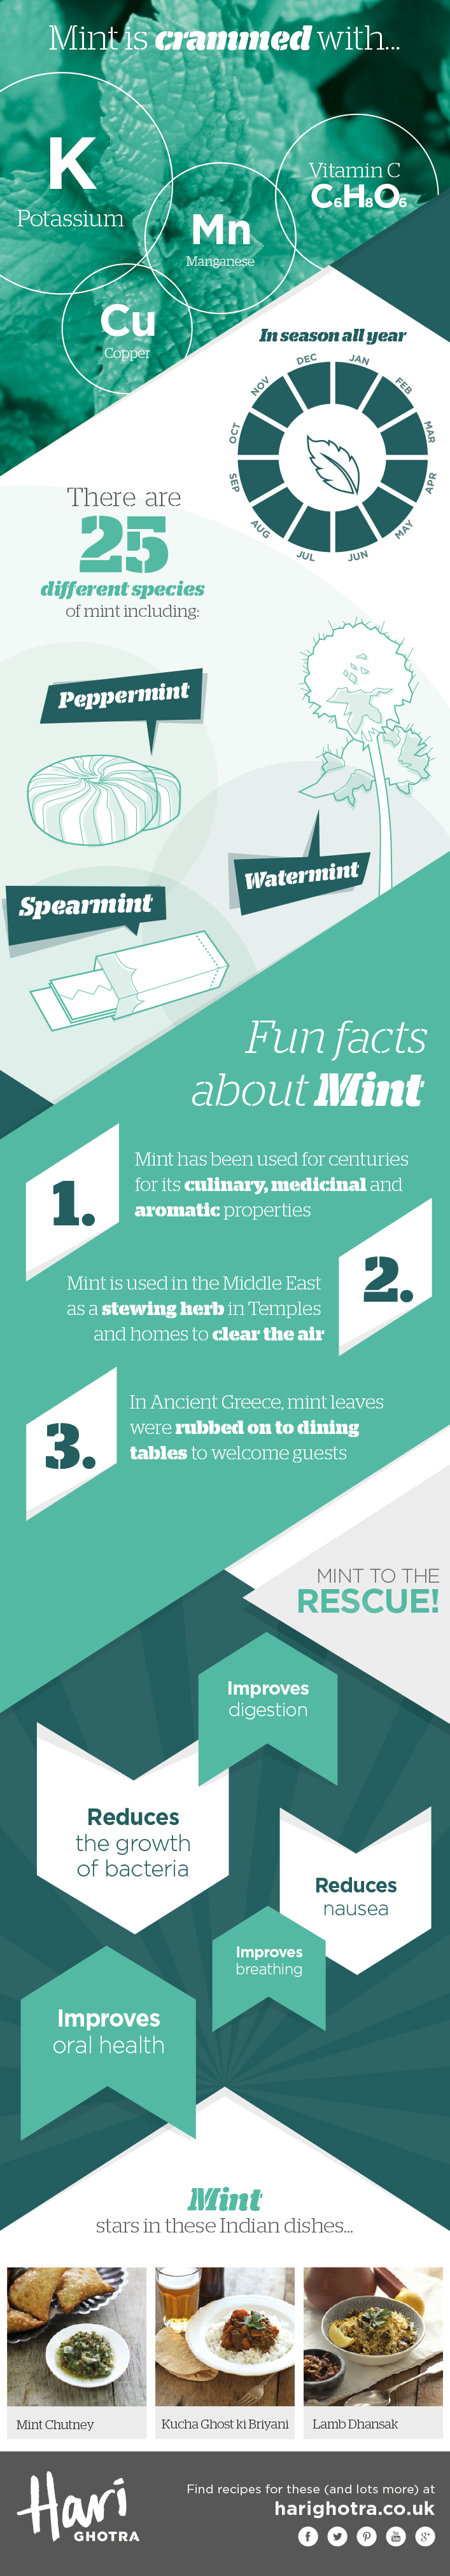 Mint Infographic showing the health benefits of Mint